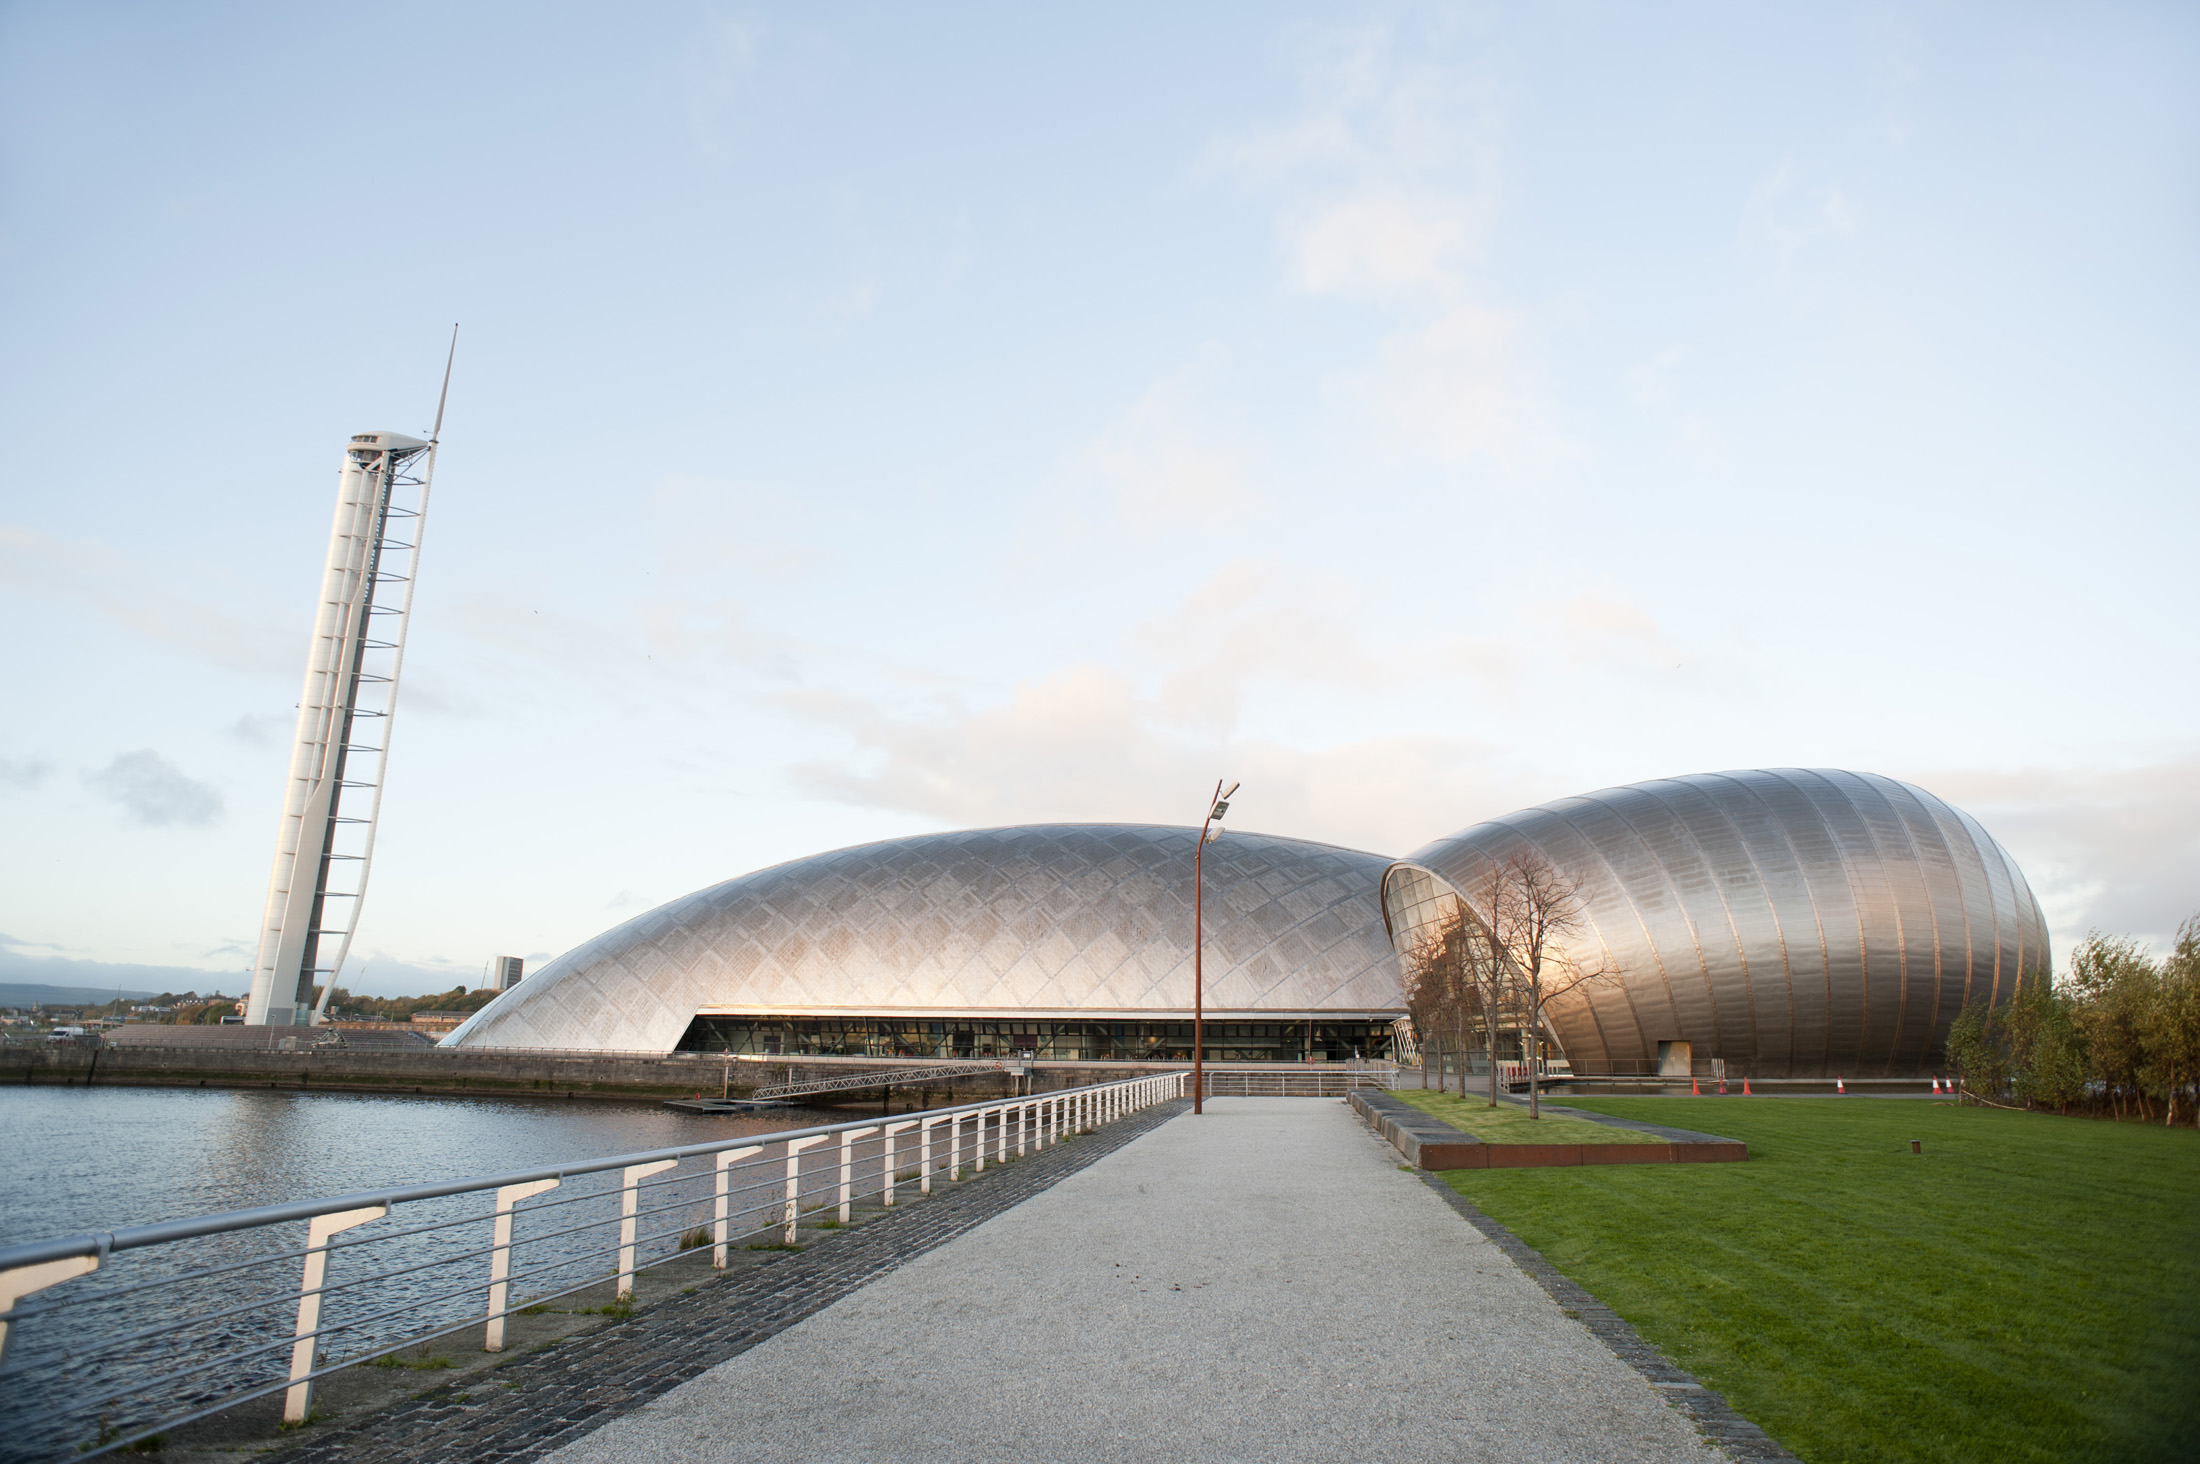 Glasgow Princes Dock Development and the Glascow Science Centre building on the River Clyde which houses exhibitions of scince and technology